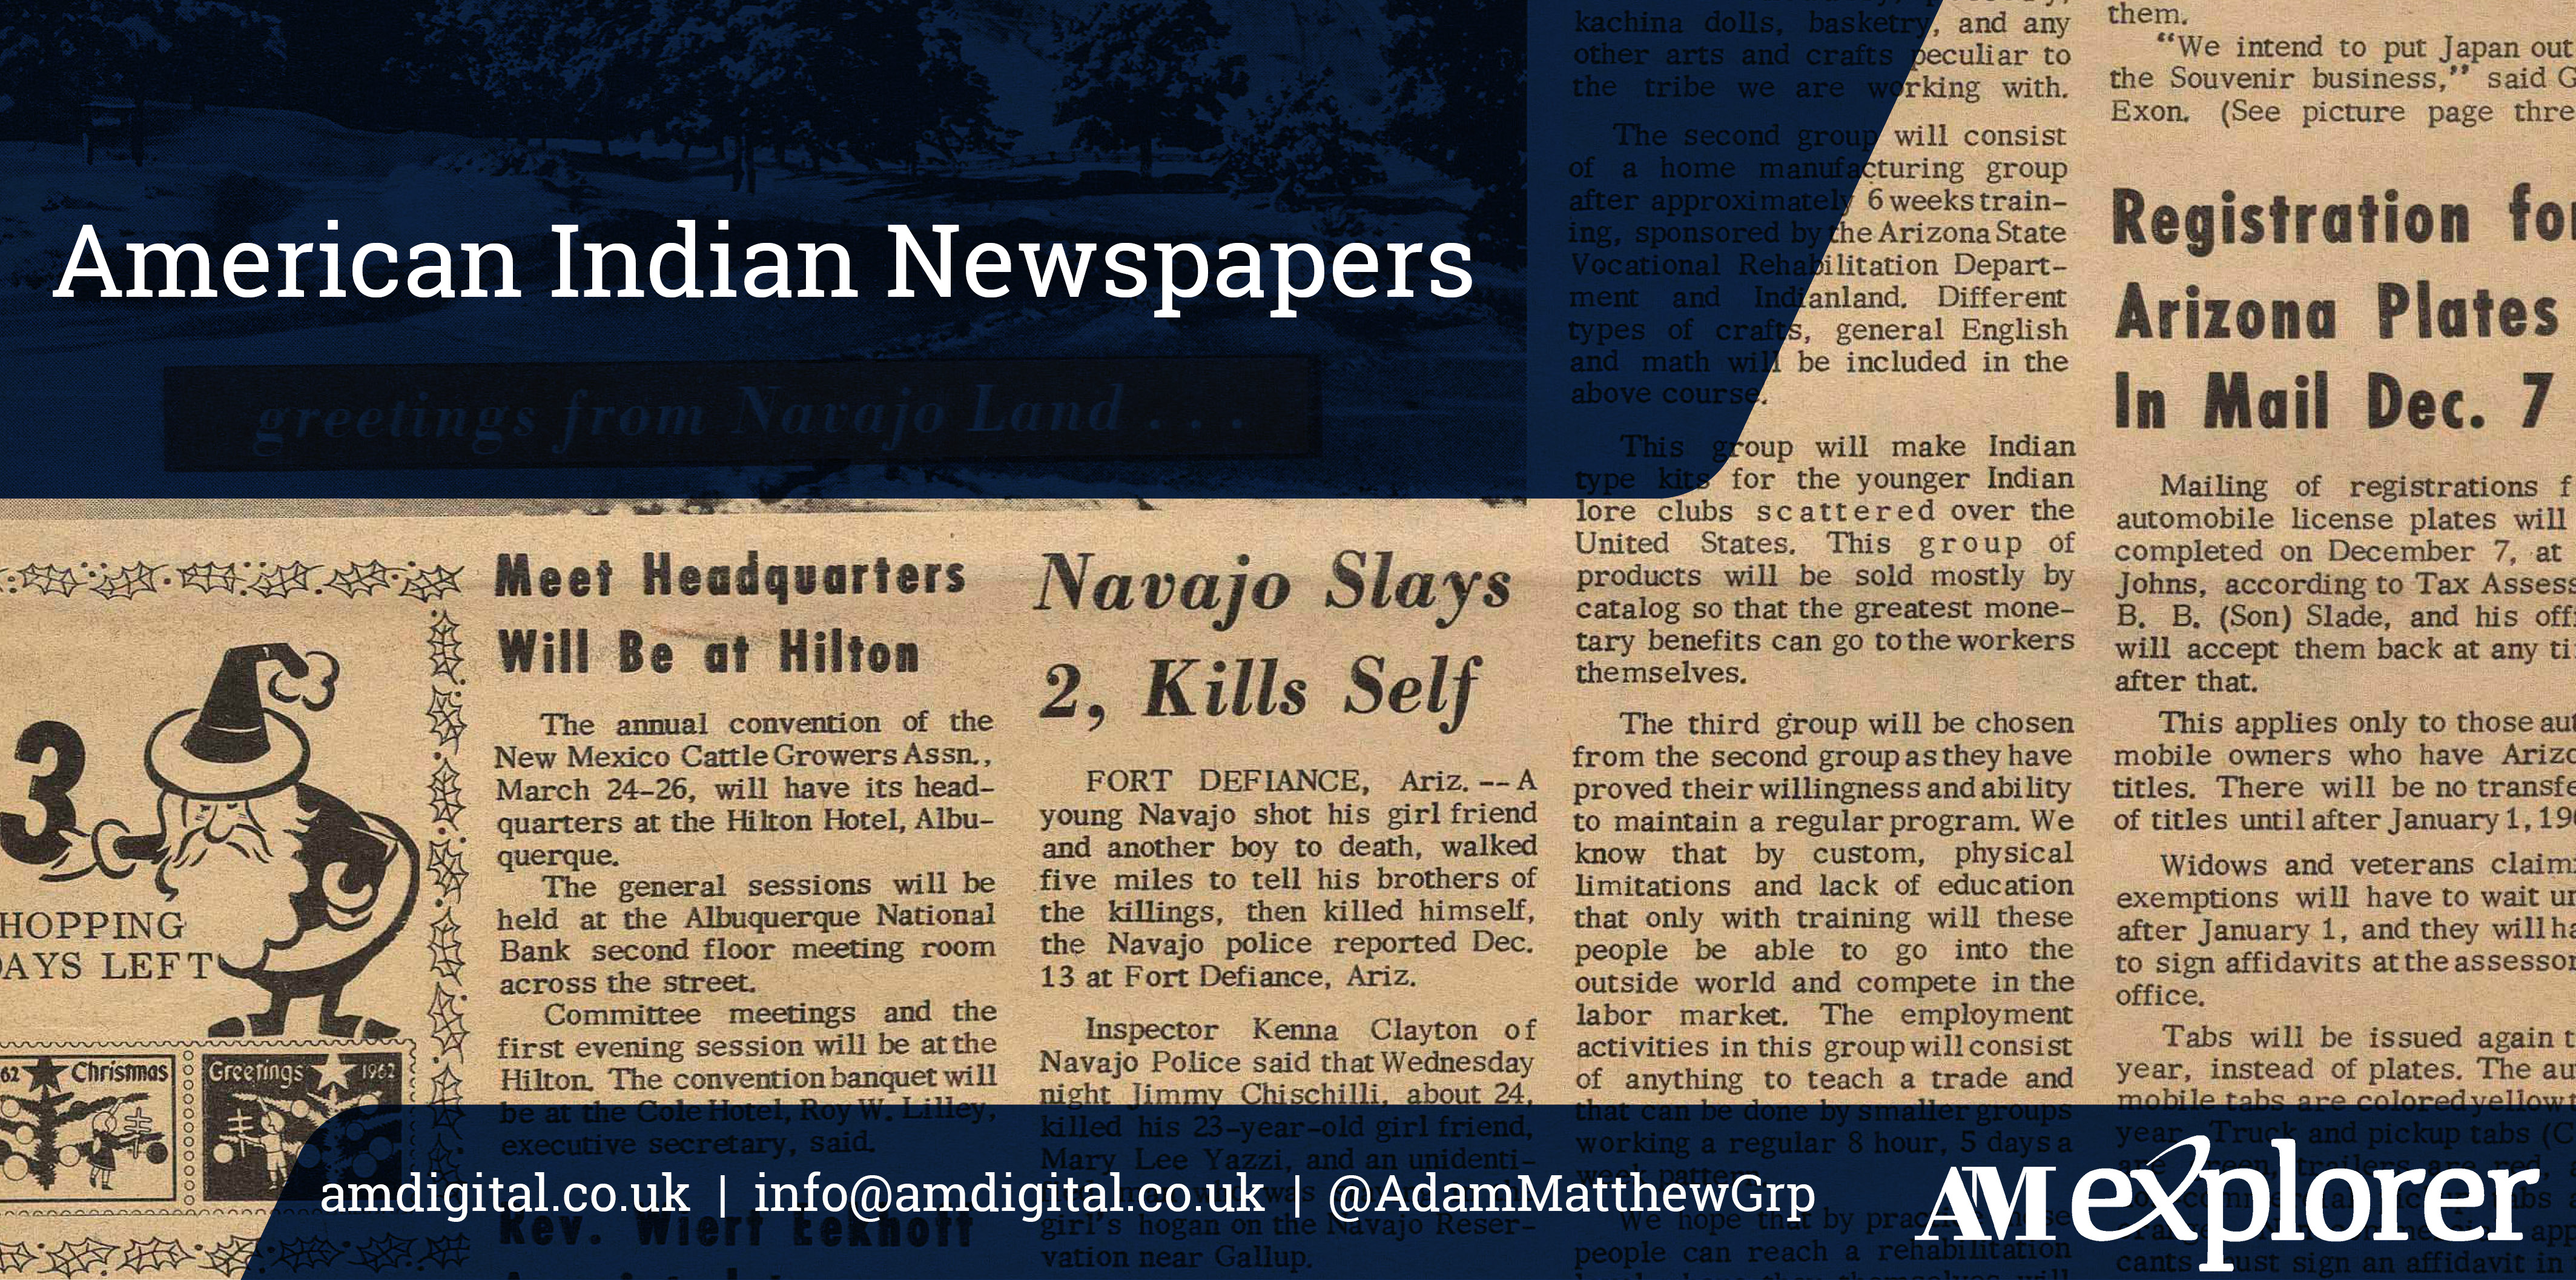 American Indian Newspapers collection image with link